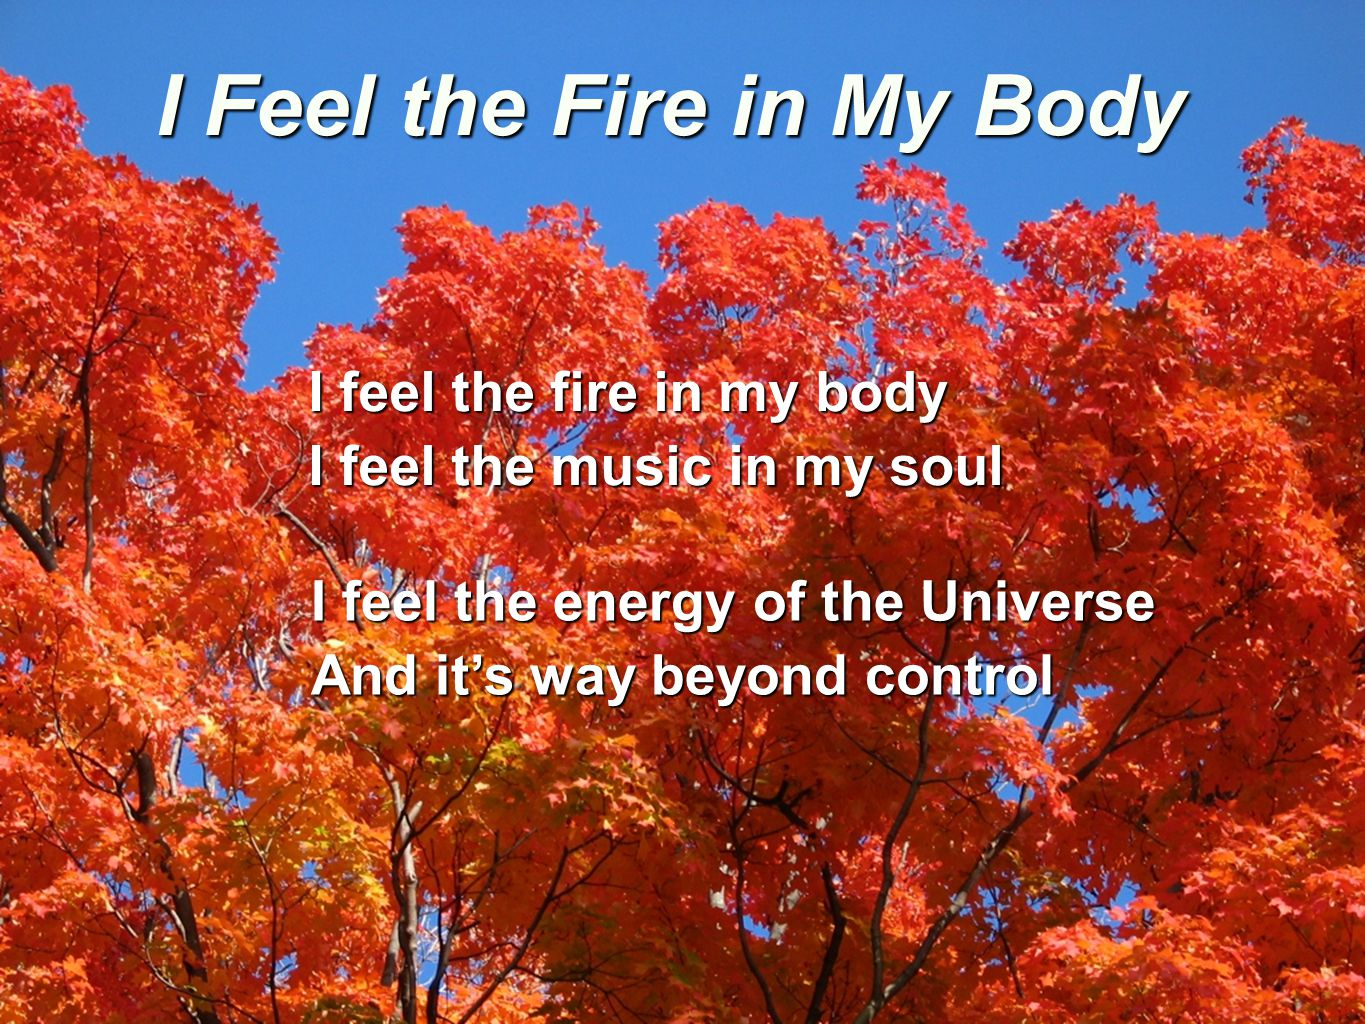 I Feel the Fire in My Body I feel the fire in my body I feel the music in my soul I feel the energy of the Universe And it's way beyond control